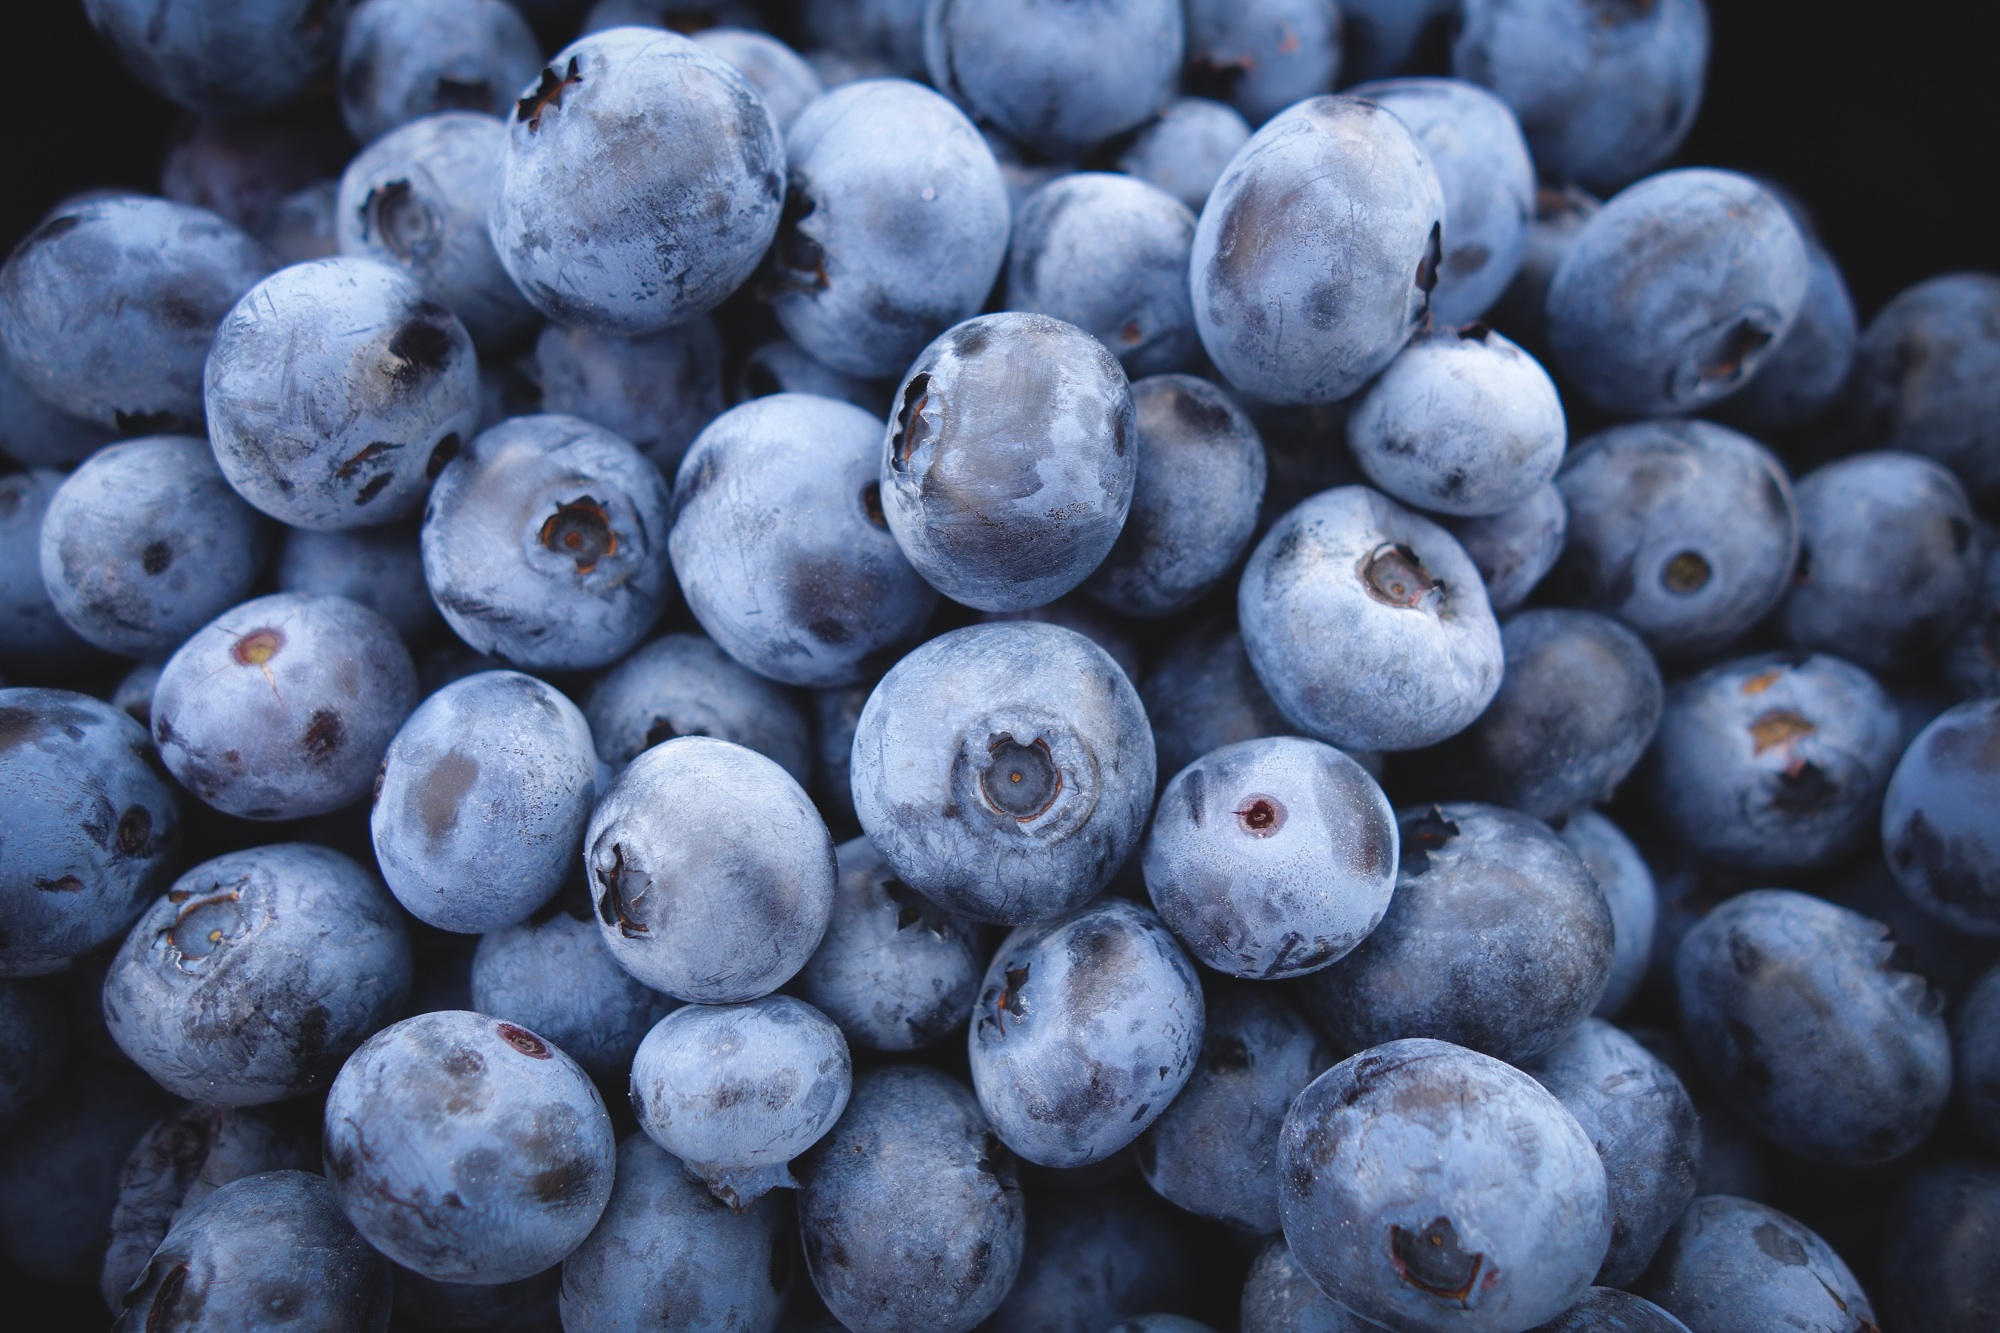 6 Reasons You Should Be Eating Blueberries Daily